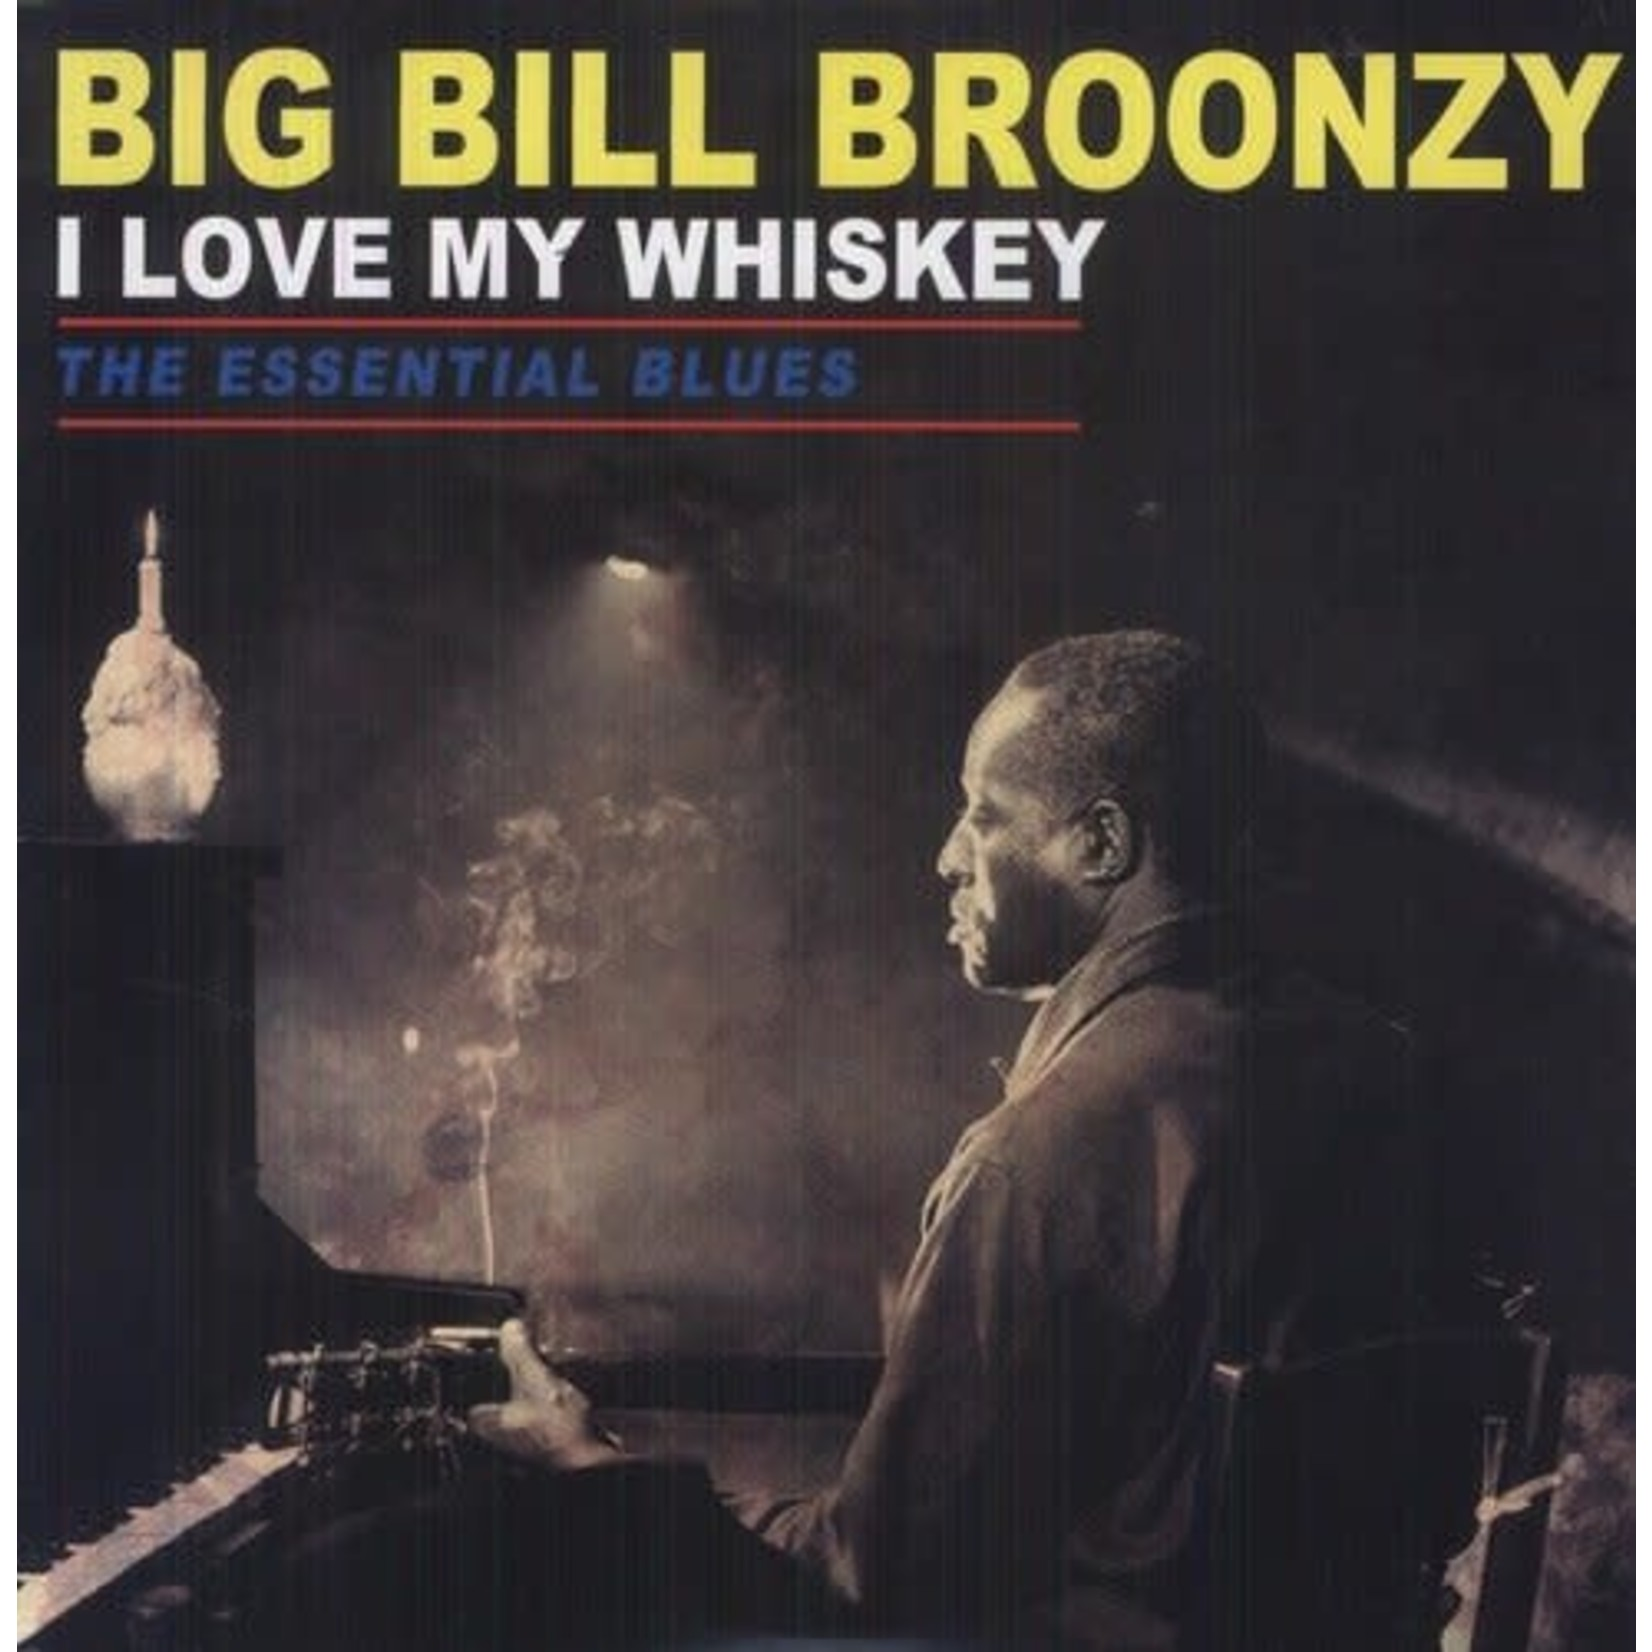 Vinyl Bil Bill Broonzy - I Love My Whiskey: Essential Blues